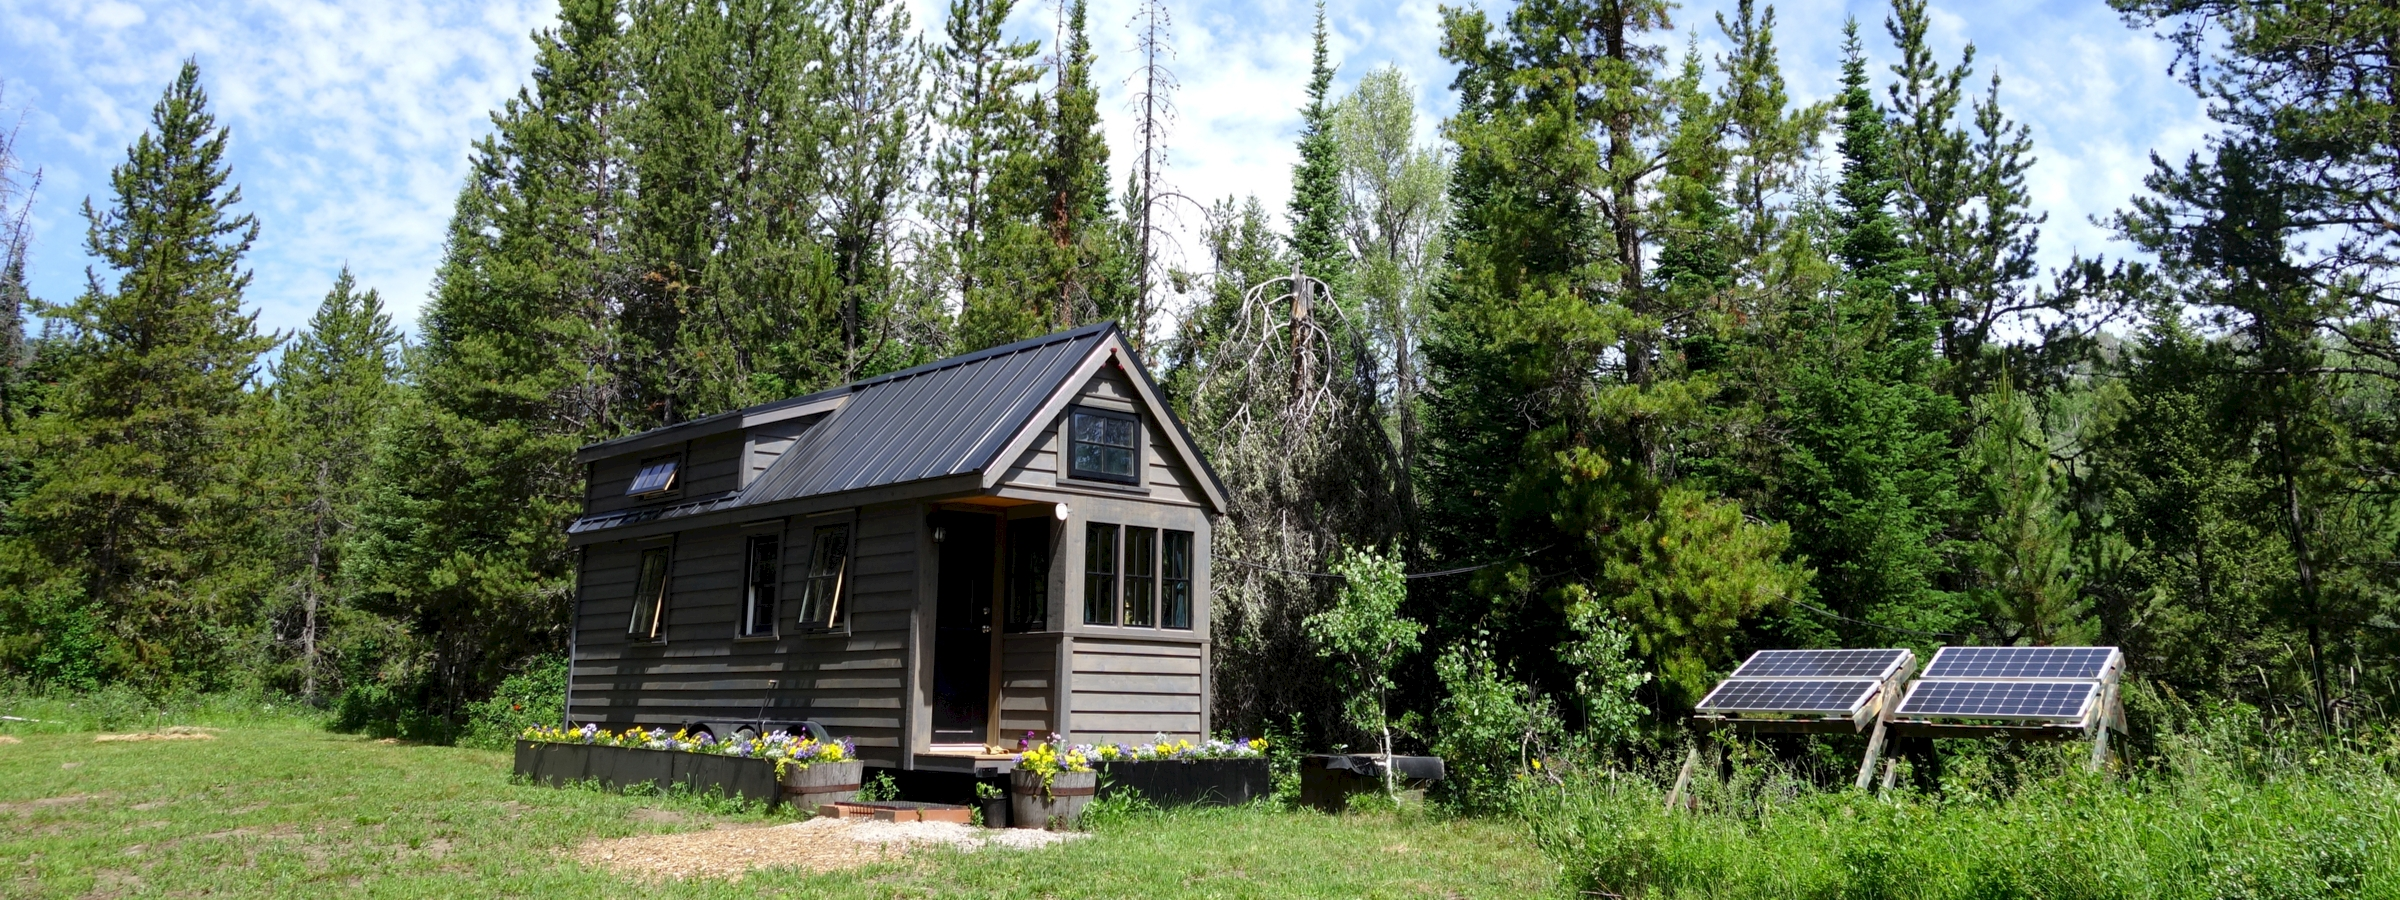 Off-grid, Grid-tied or Hybrid: Which Option Is Best for You?